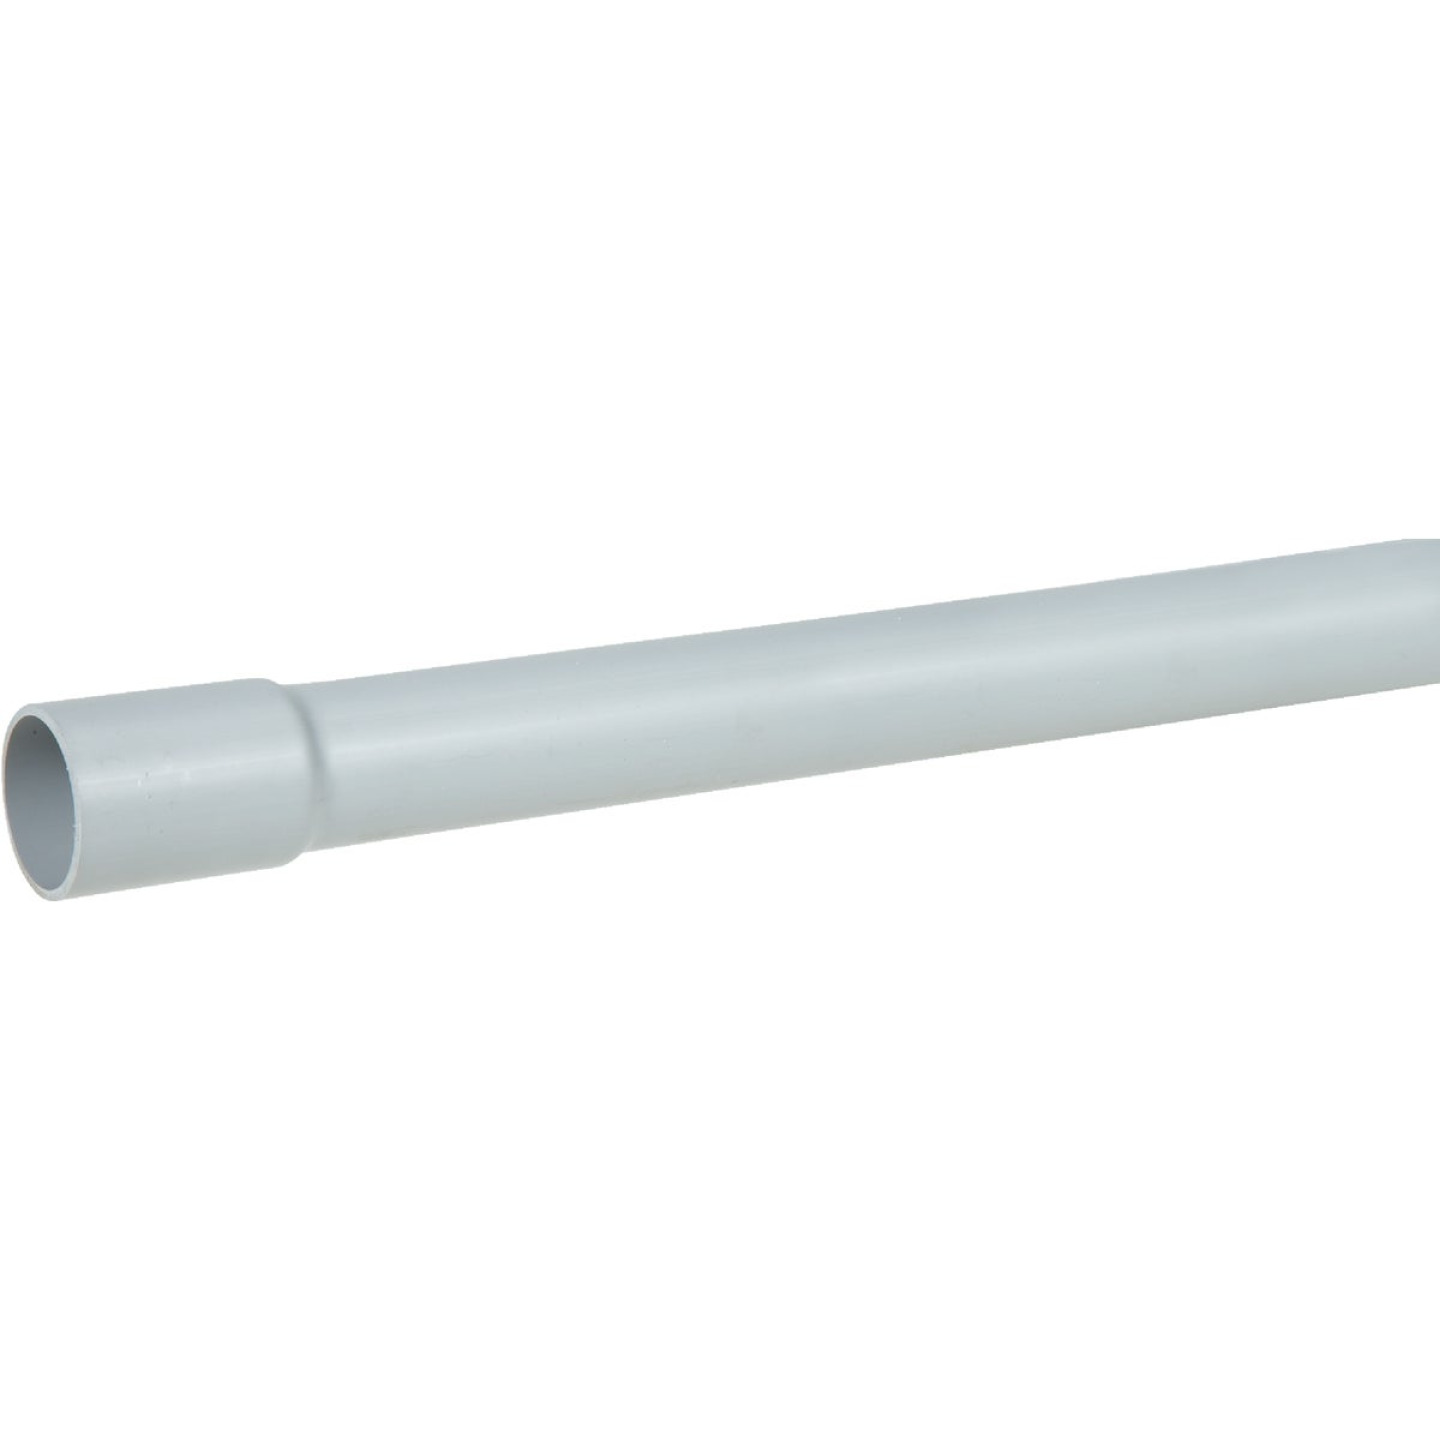 Allied 2 In. x 10 Ft. Schedule 40 PVC Conduit Image 1